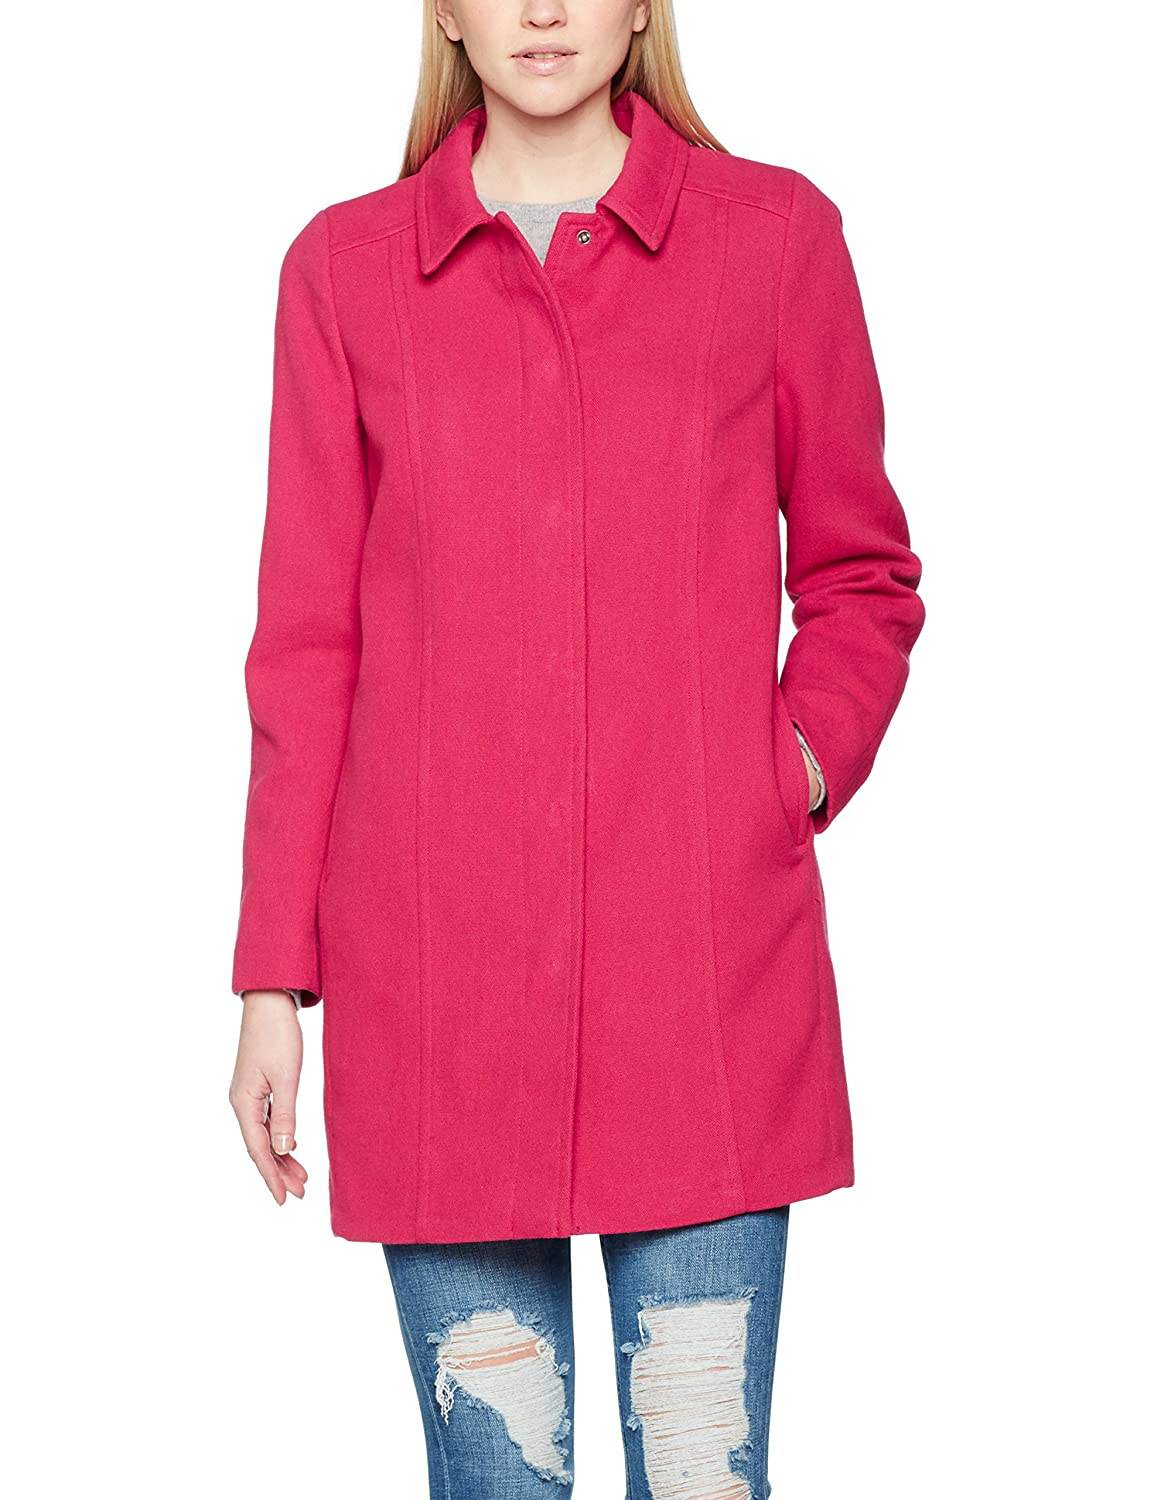 United Colors of Benetton Classic Coloured Coat Abrigo para Mujer